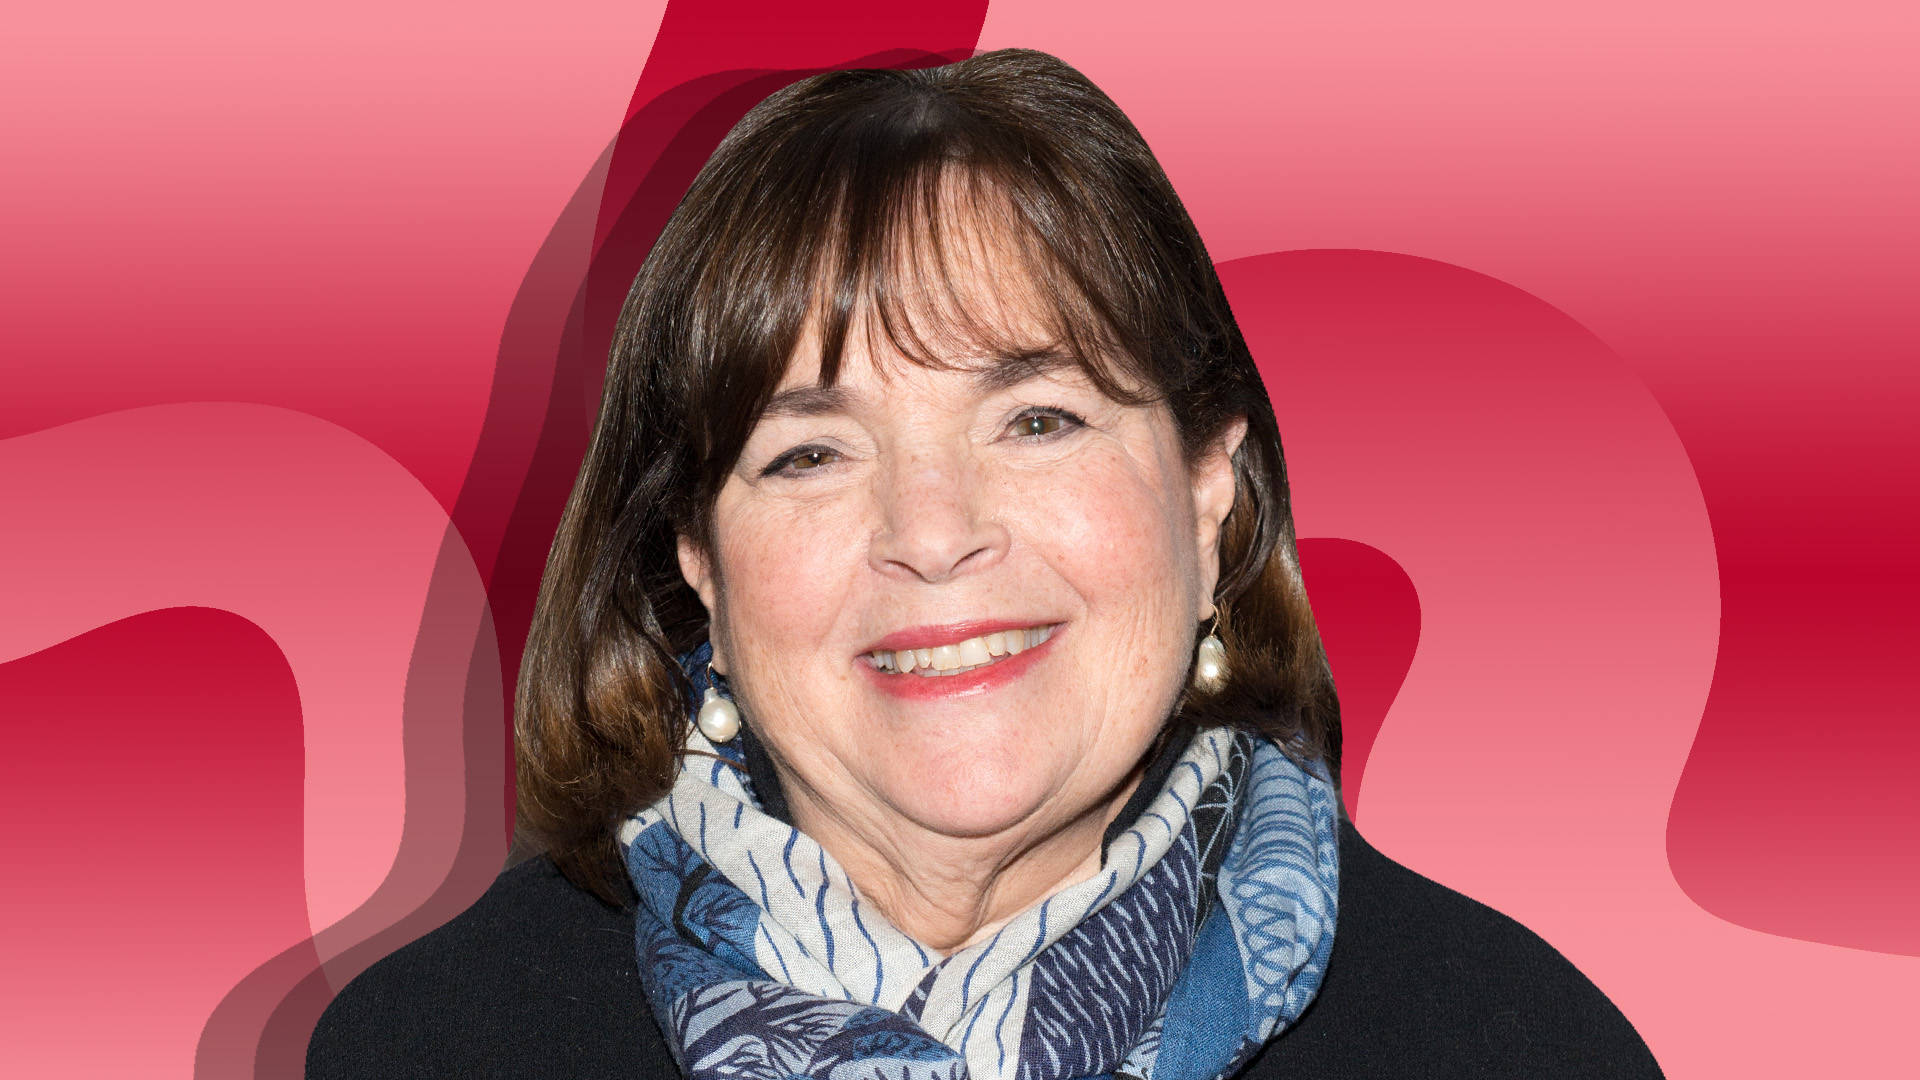 Ina Garten White House Career